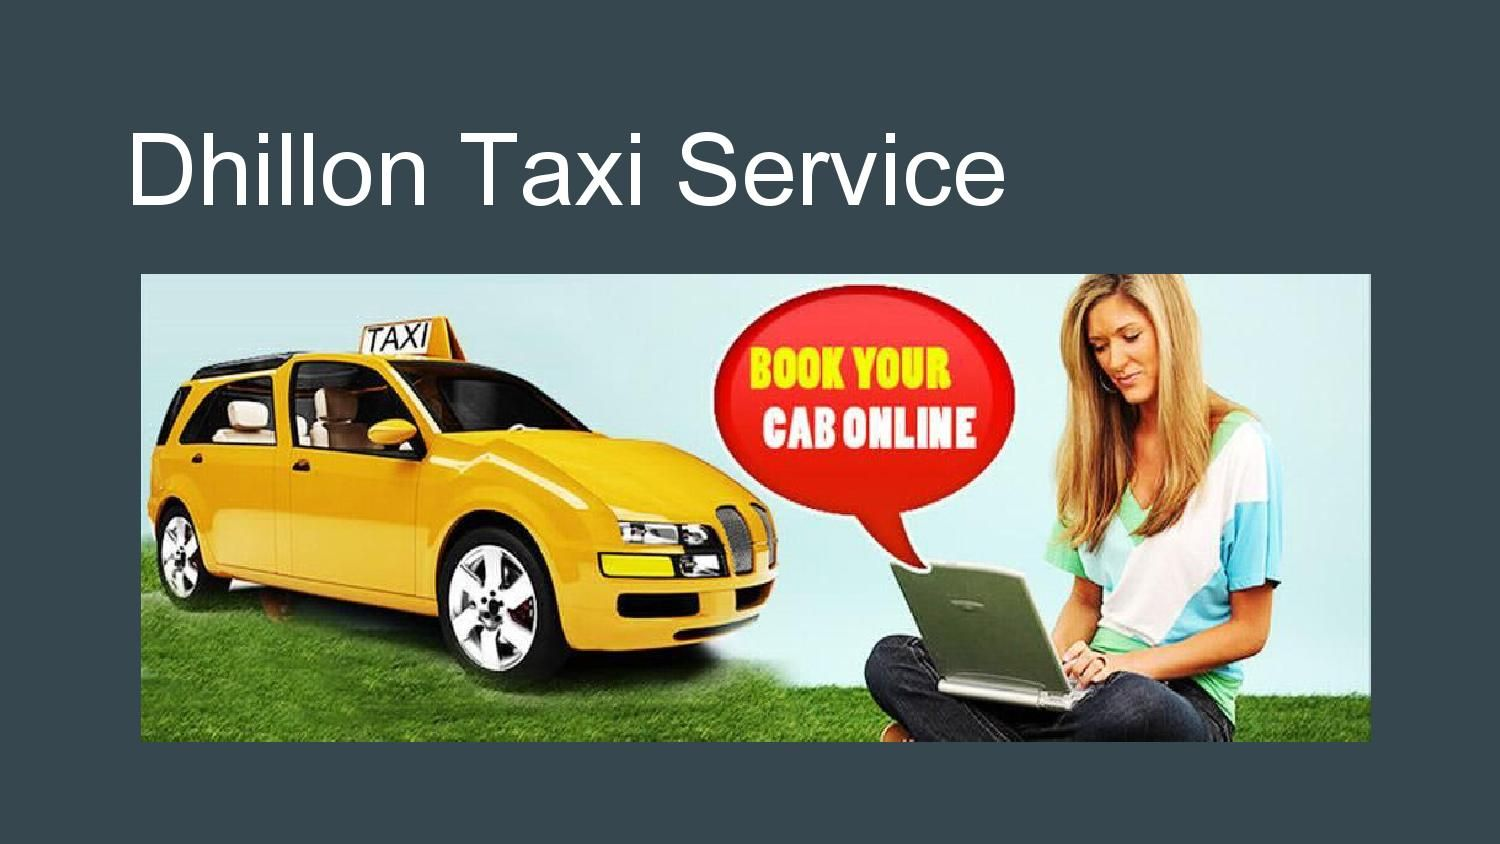 Dhillon Taxi Service is a leading taxi service provider in the Chandigarh region. We provide an economic & reliable taxi service in Chandigarh and its adjacent territories.